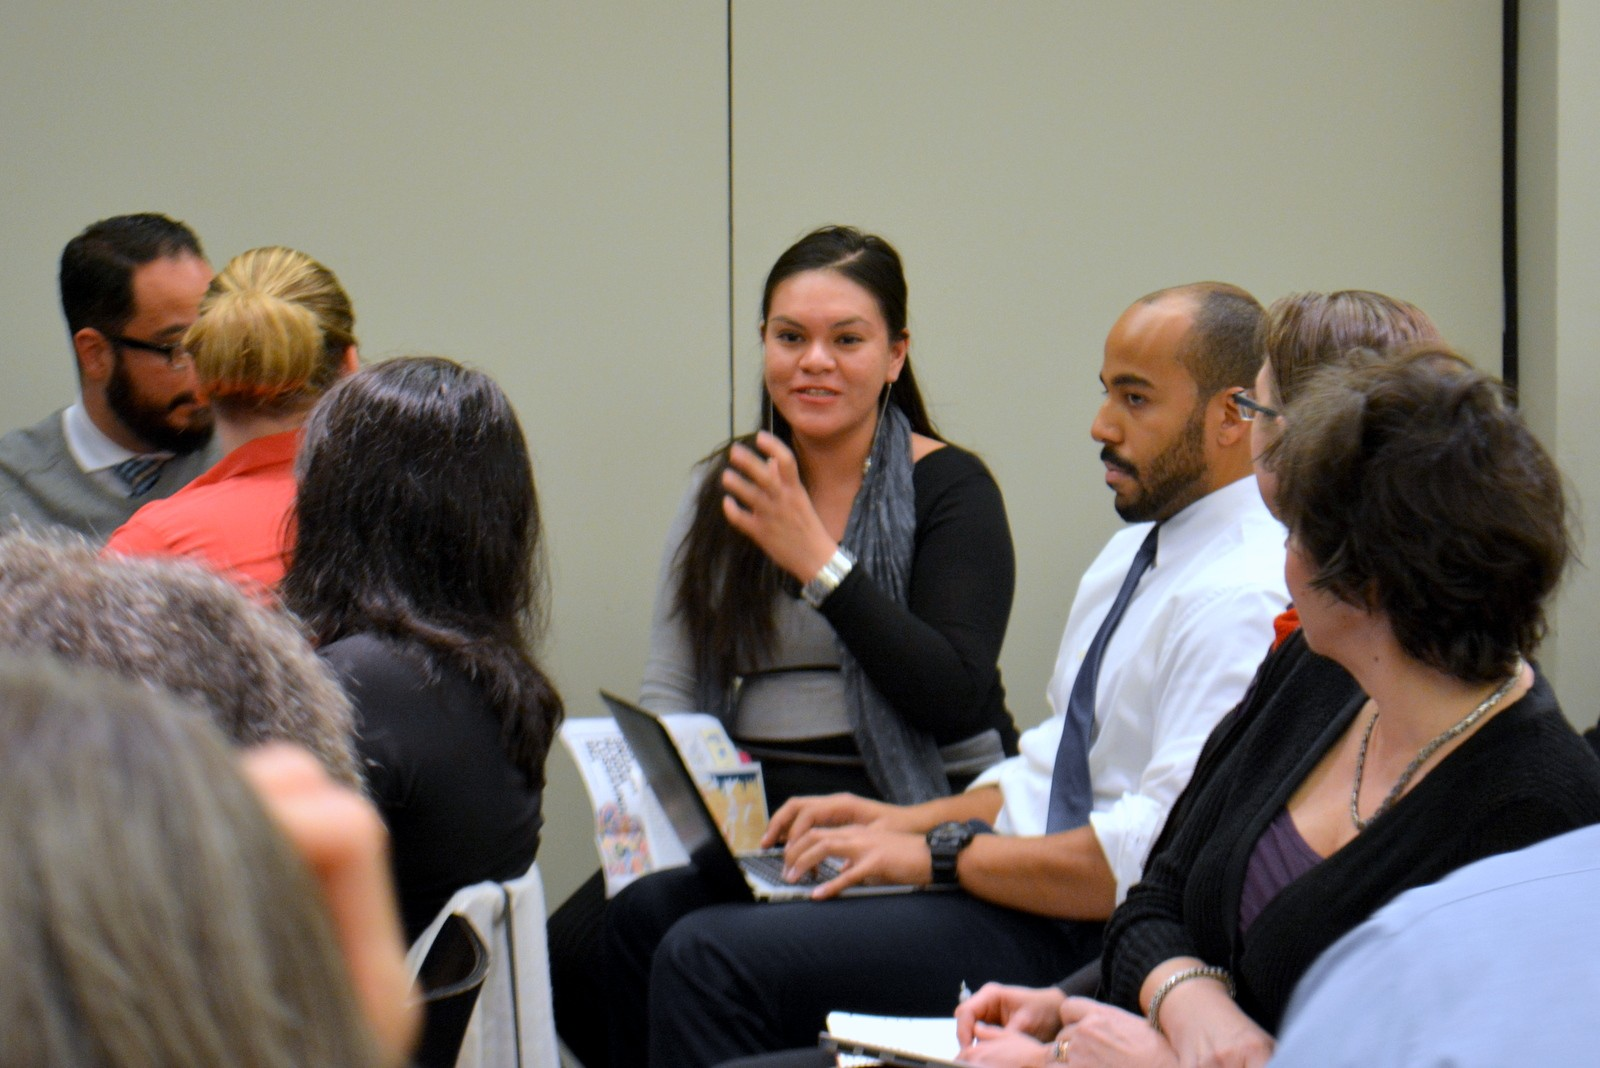 A community college student discusses her experience at the 10/22/15 Futures Initiative event